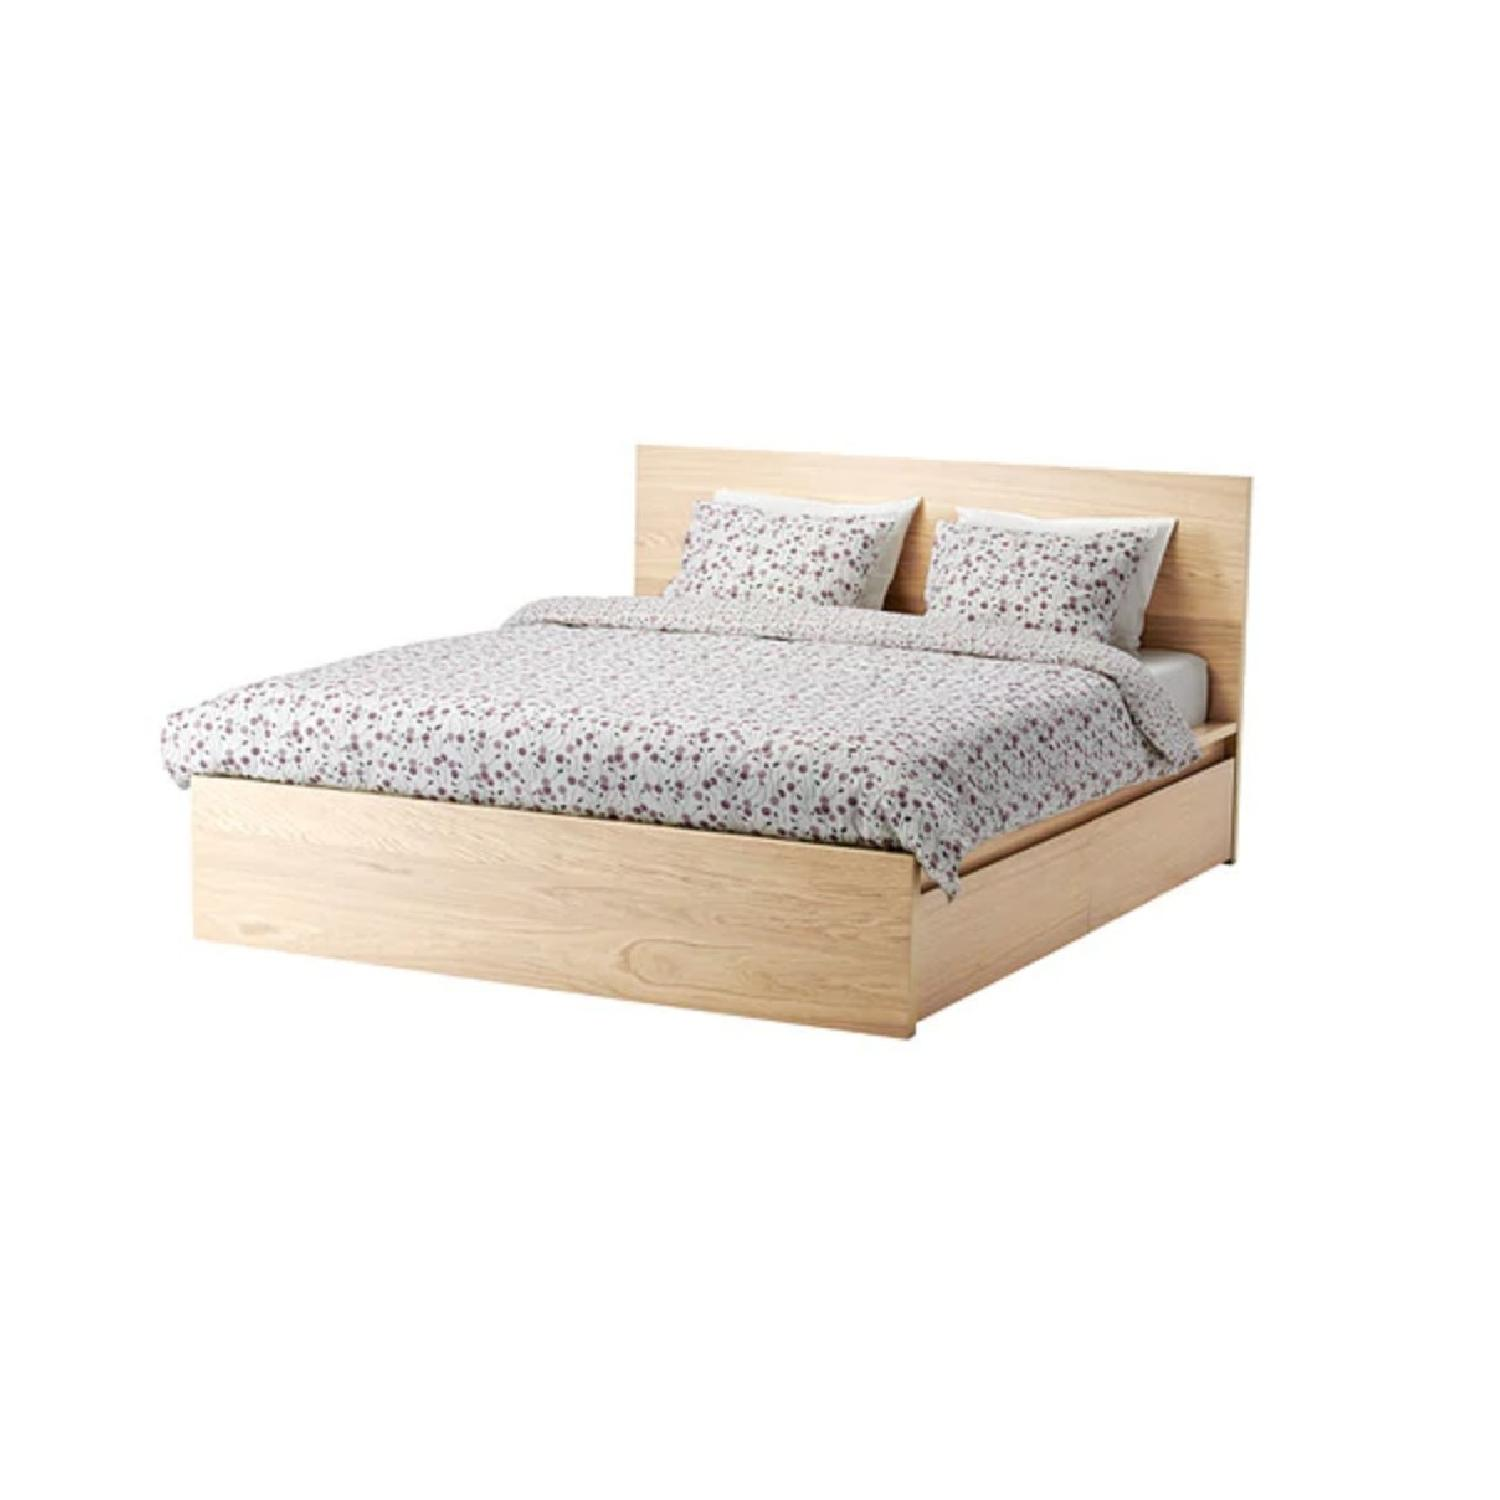 ikea malm birch veneer full size bed w 2 storage drawers - Bed With Drawers